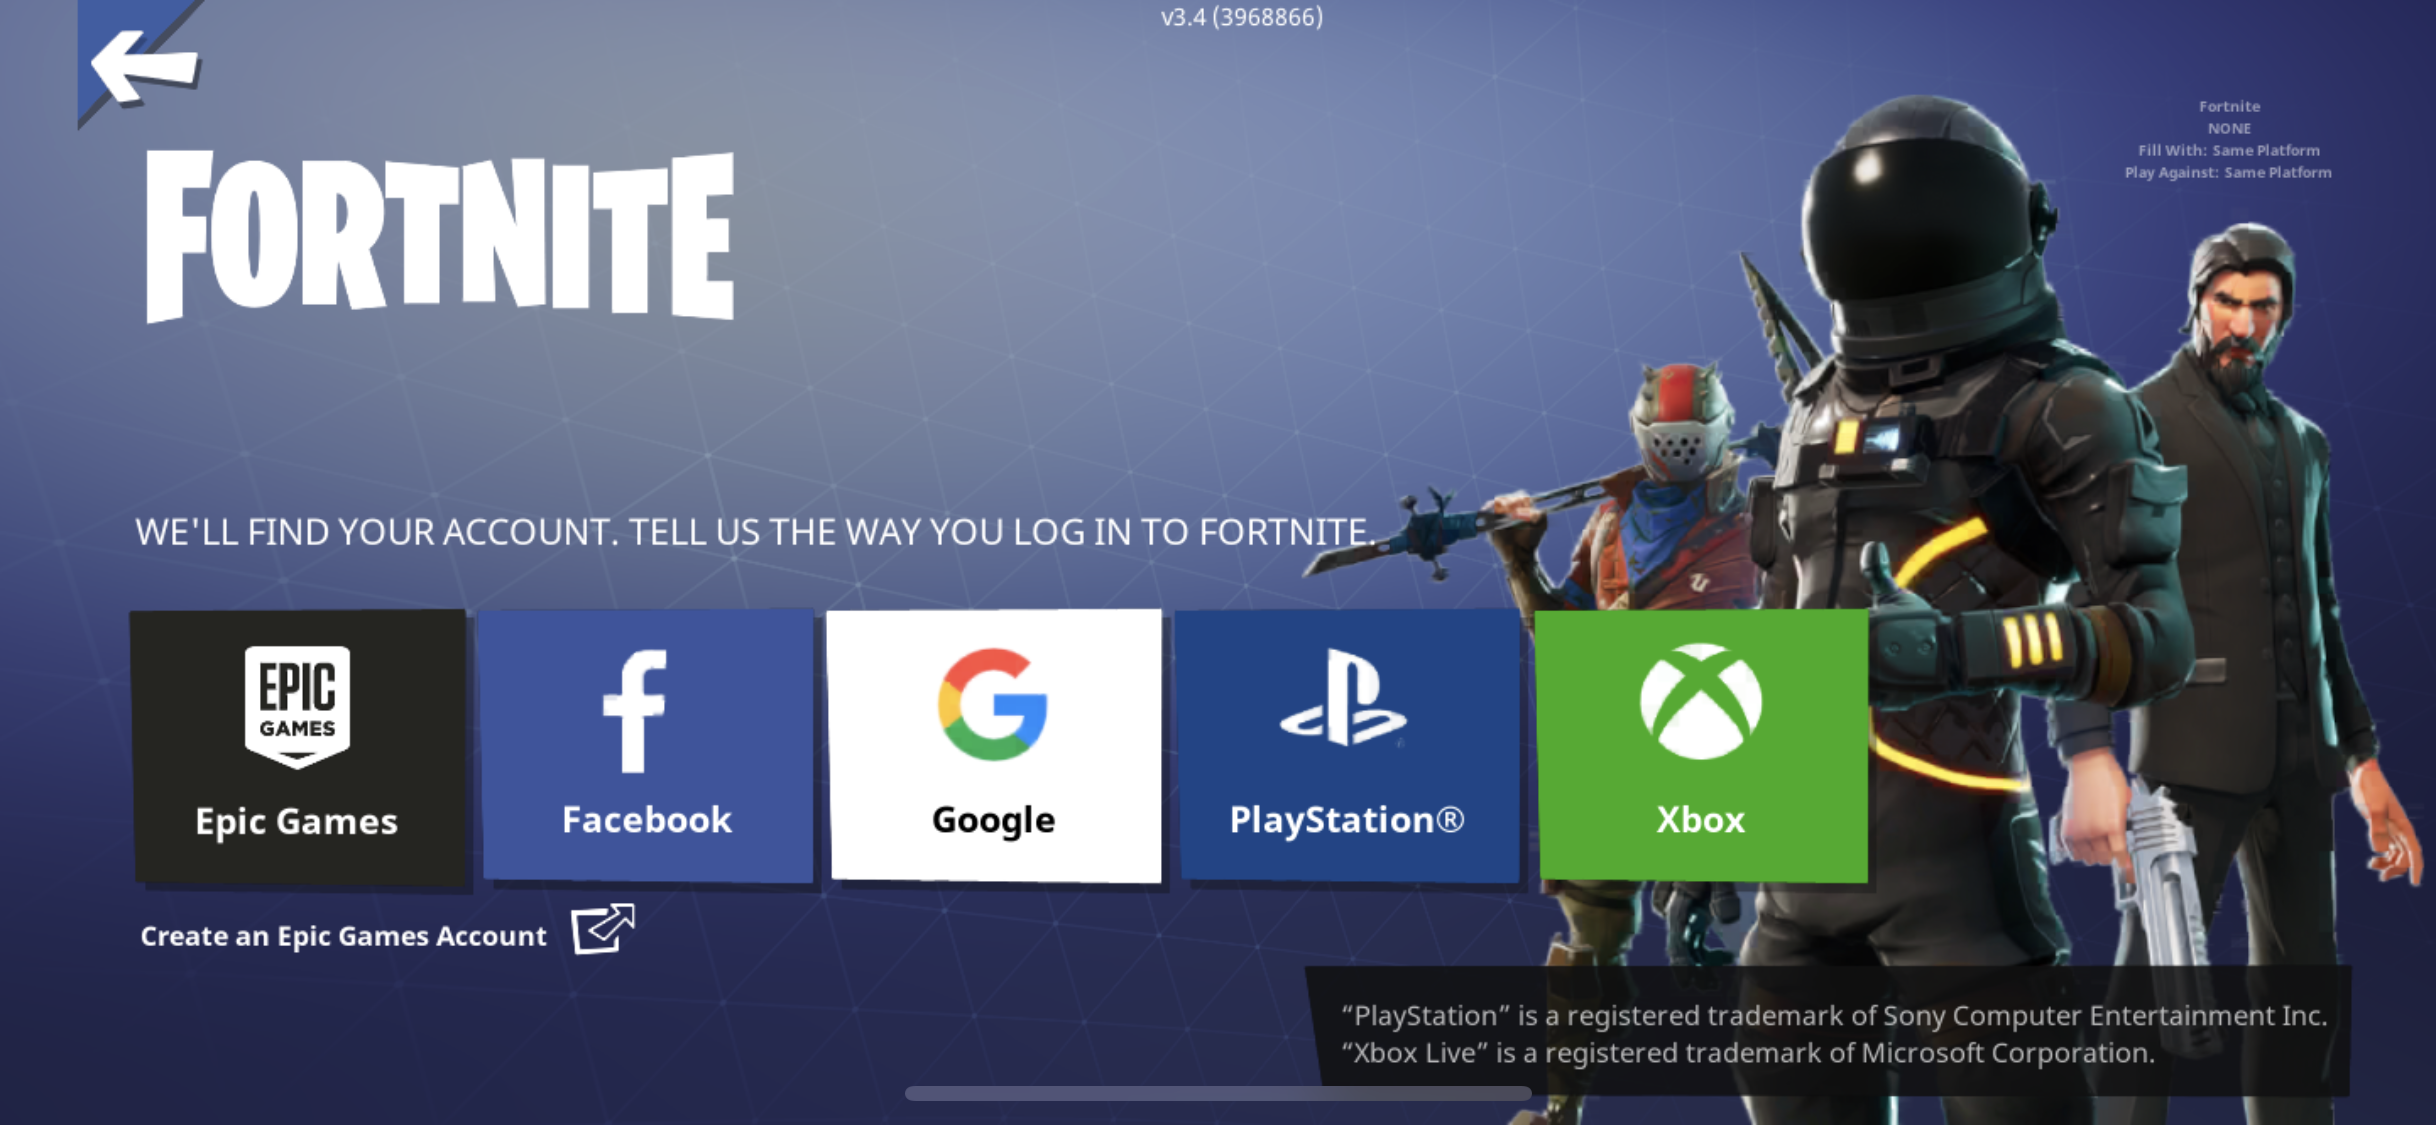 signing into your epic games account in fortnite on ios epic games - play fortnite mobile on mac